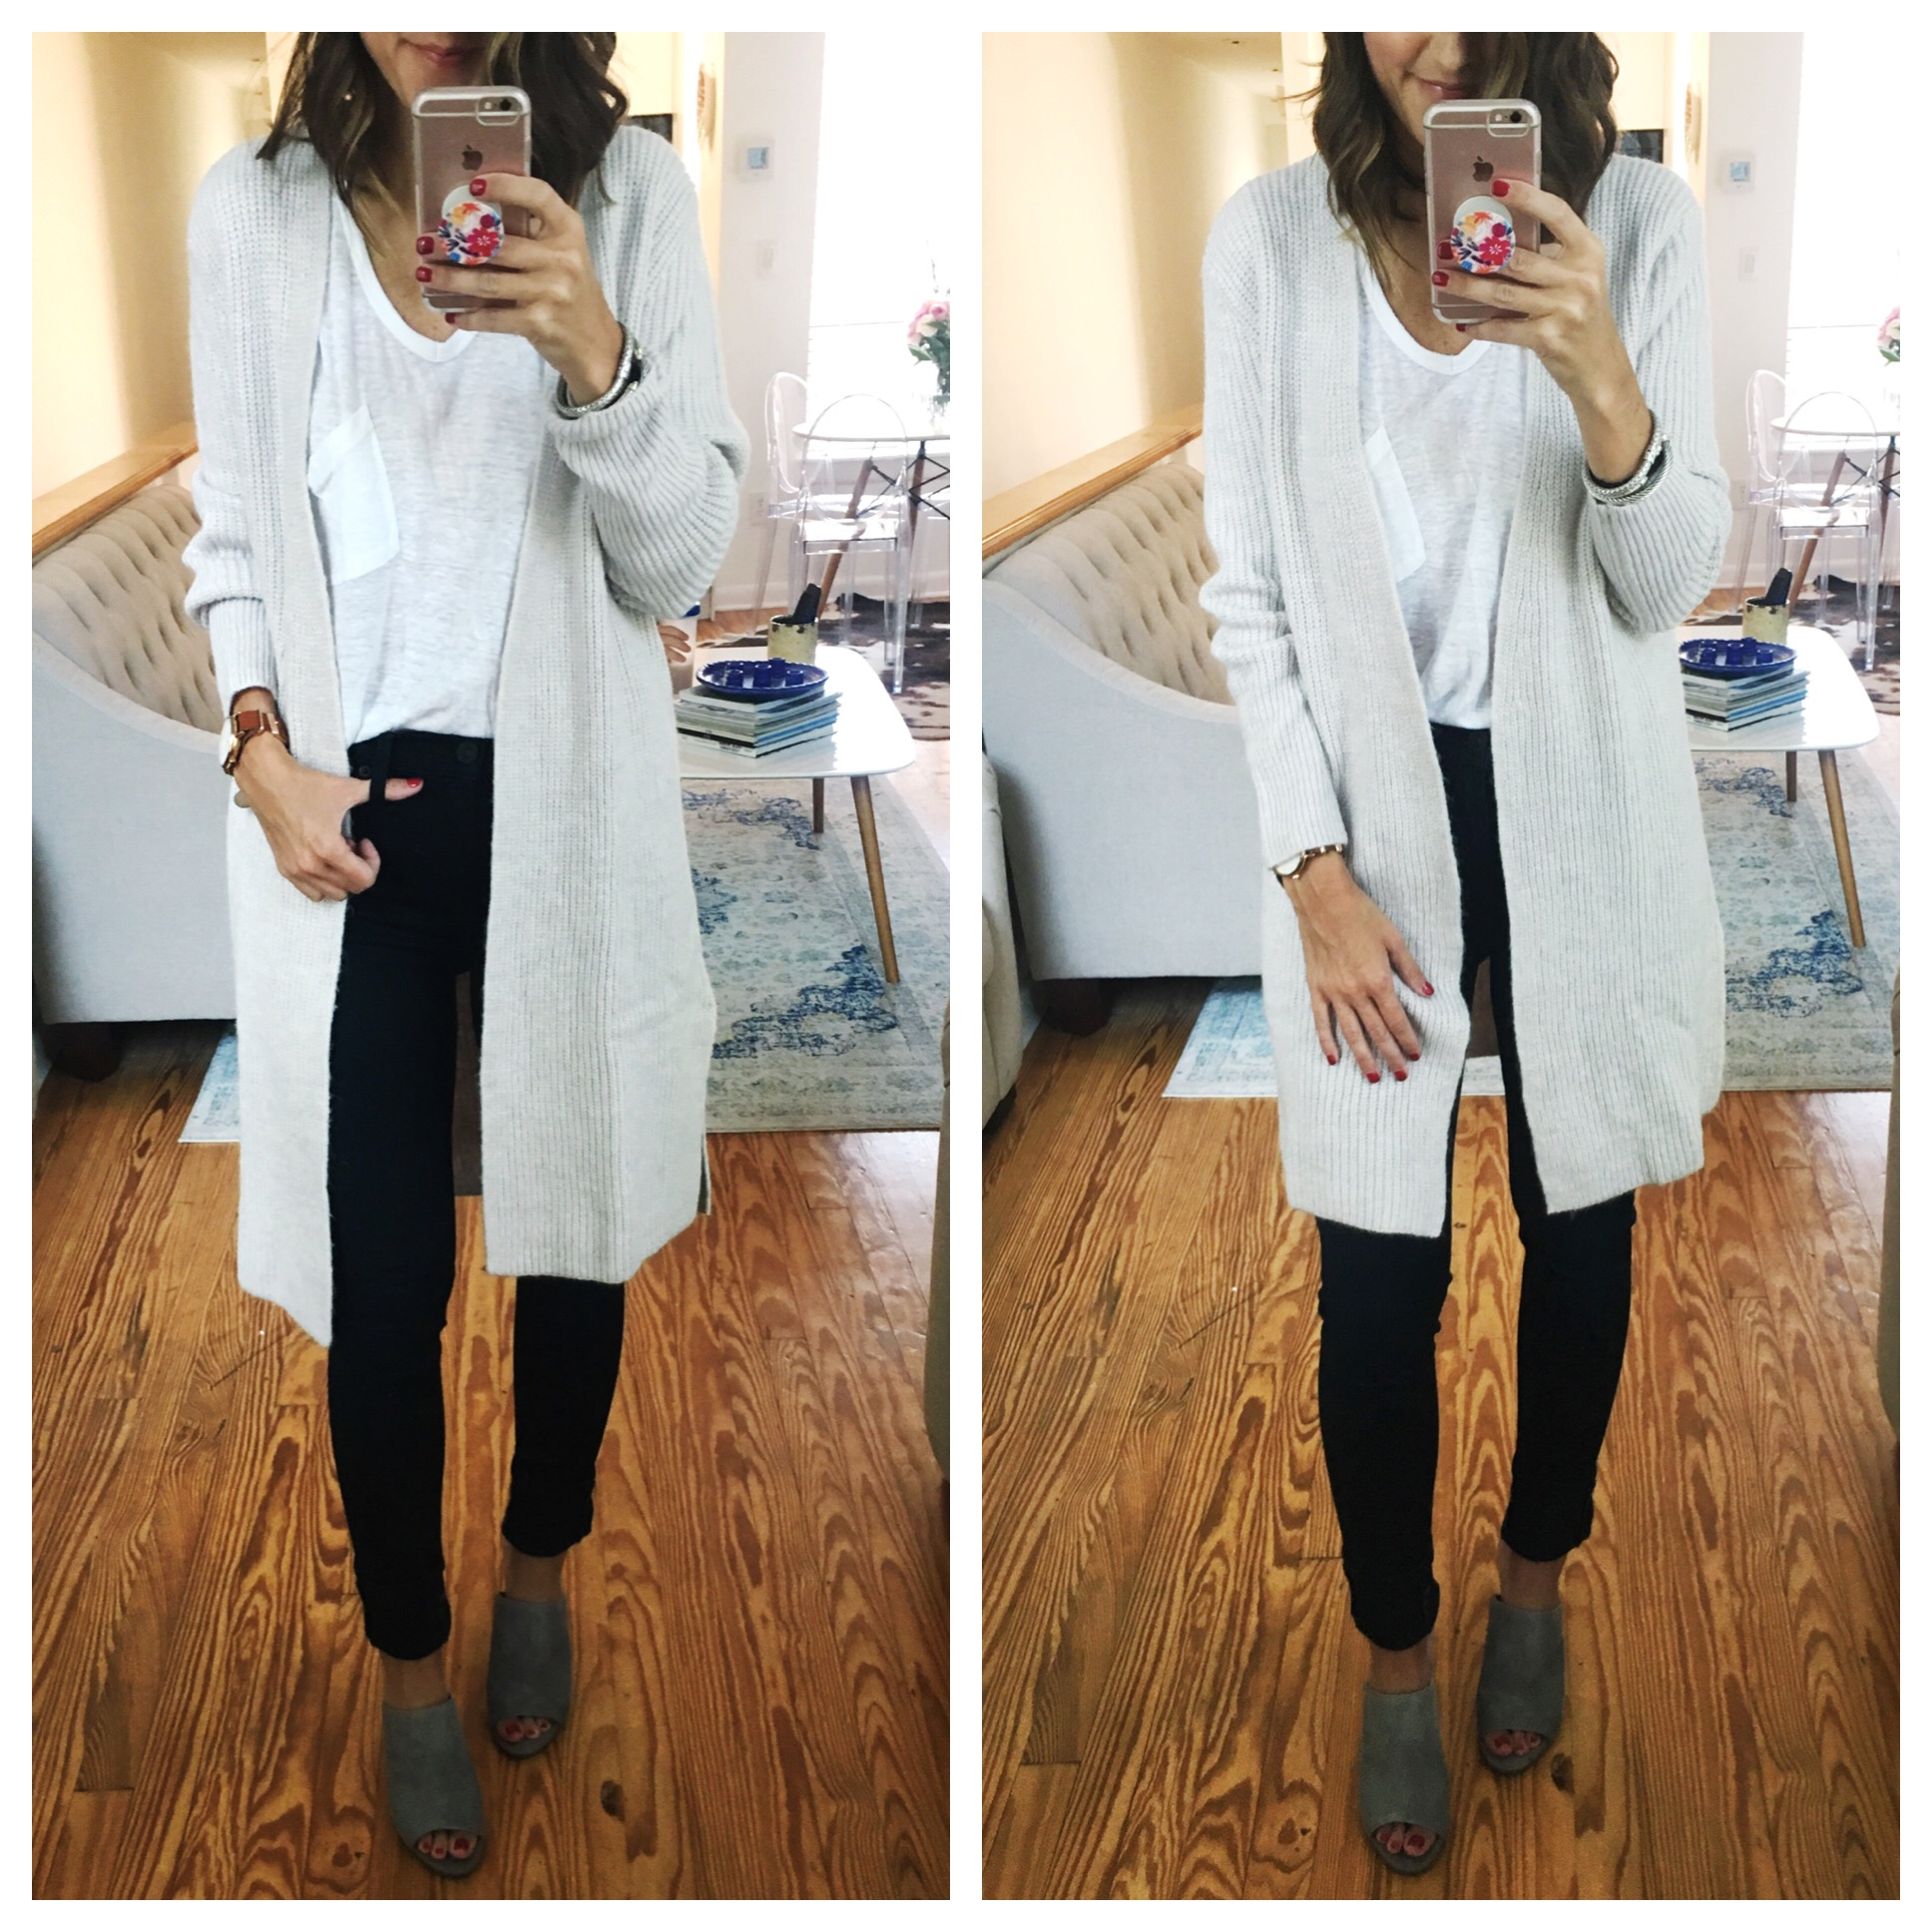 Cozy-Cardigan - Nordstrom Anniversary Sale Try On Session by popular Washington DC style blogger Cobalt Chronicles